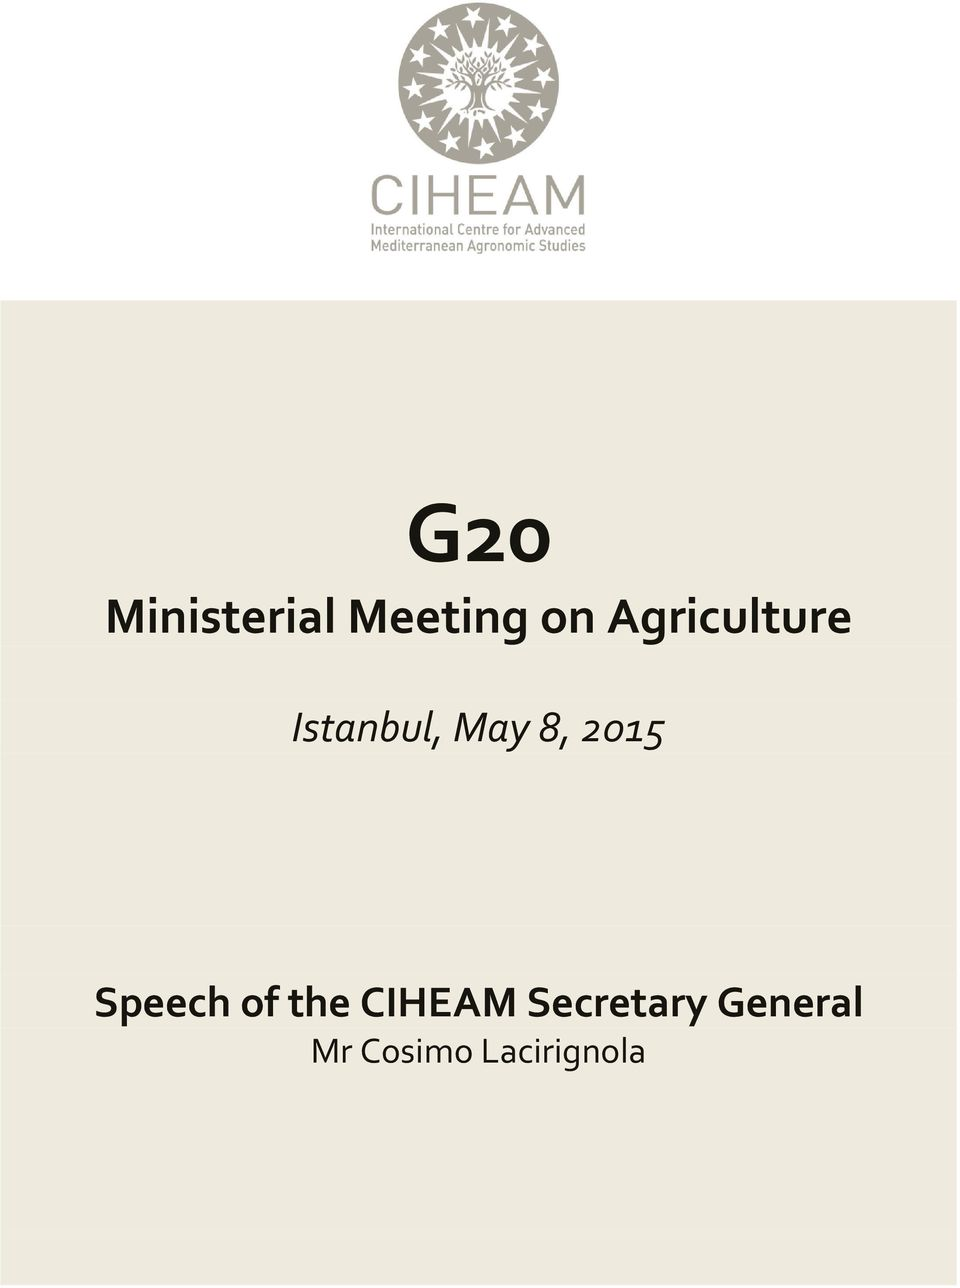 2015 Speech of the CIHEAM